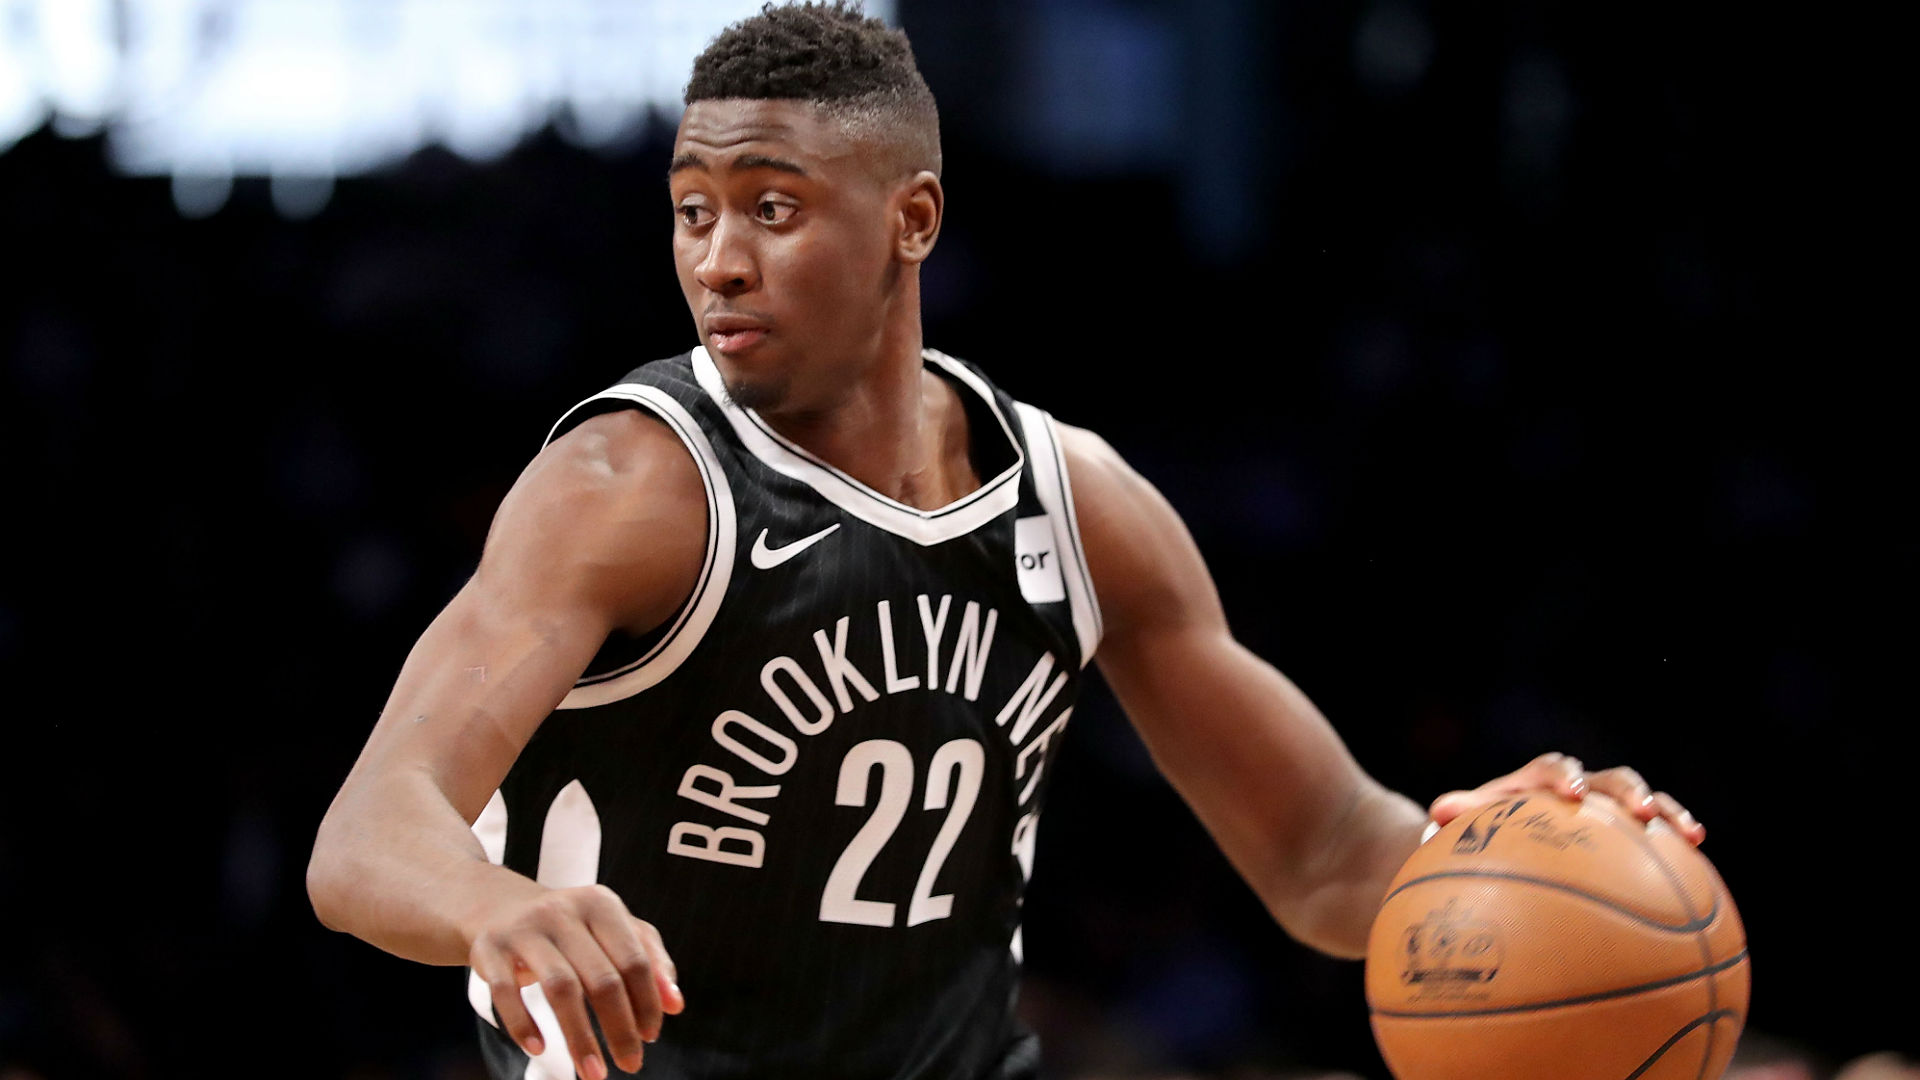 Caris LeVert of Brooklyn Nets suffers dislocated right foot